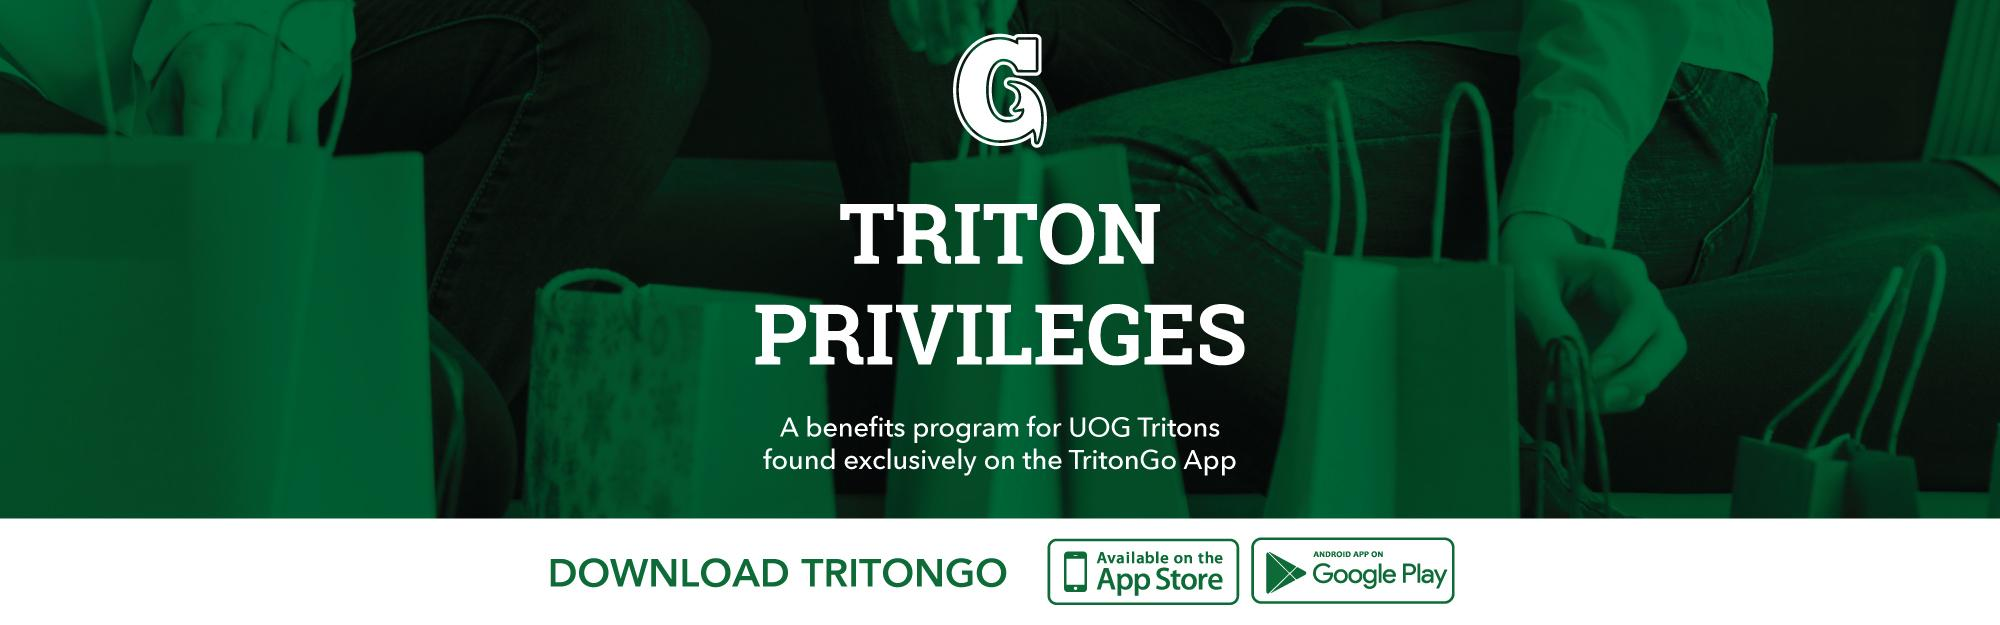 Triton Privileges